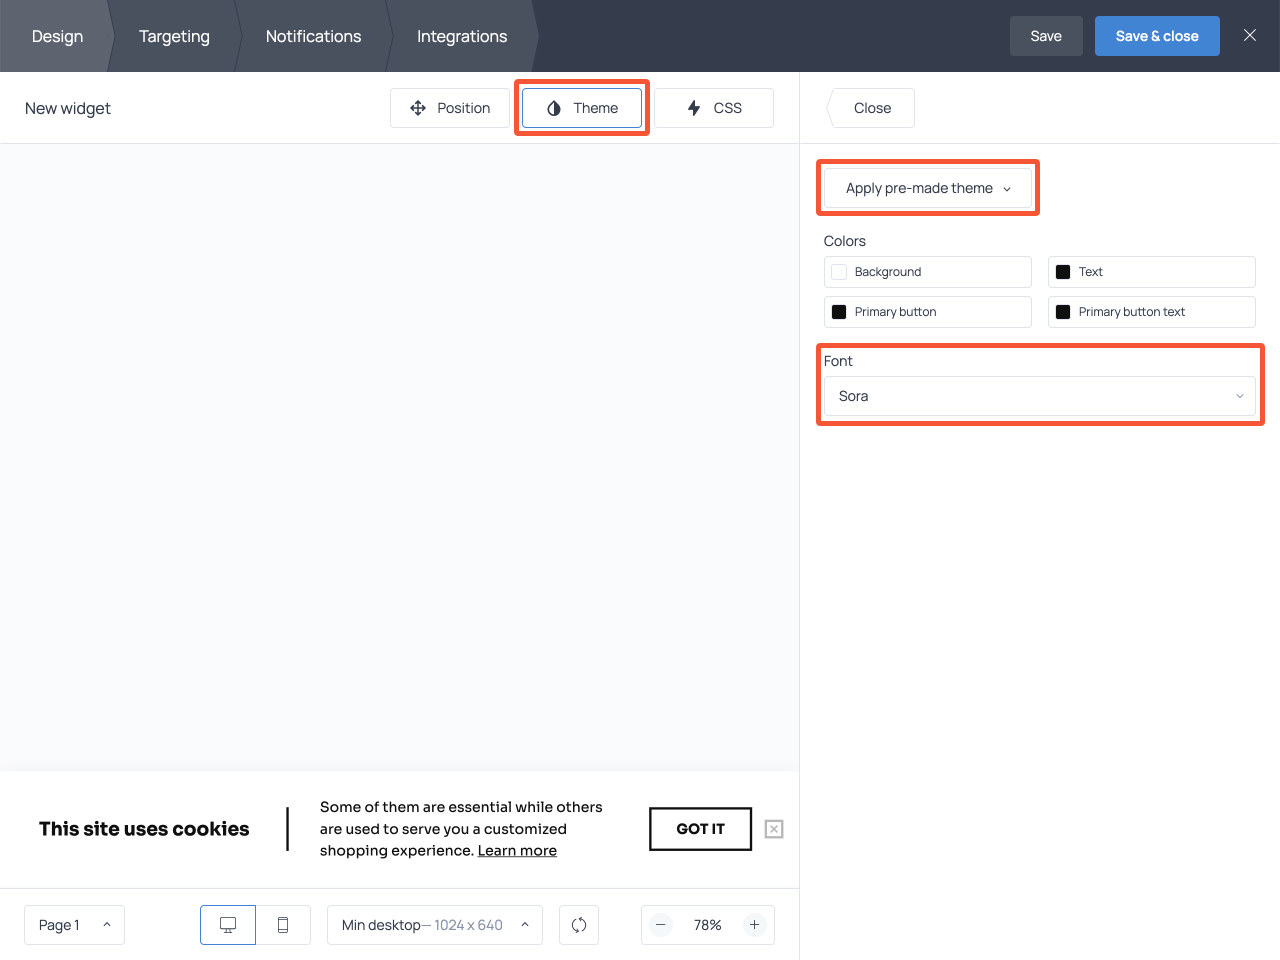 How to edit the appearance of a cookie consent message